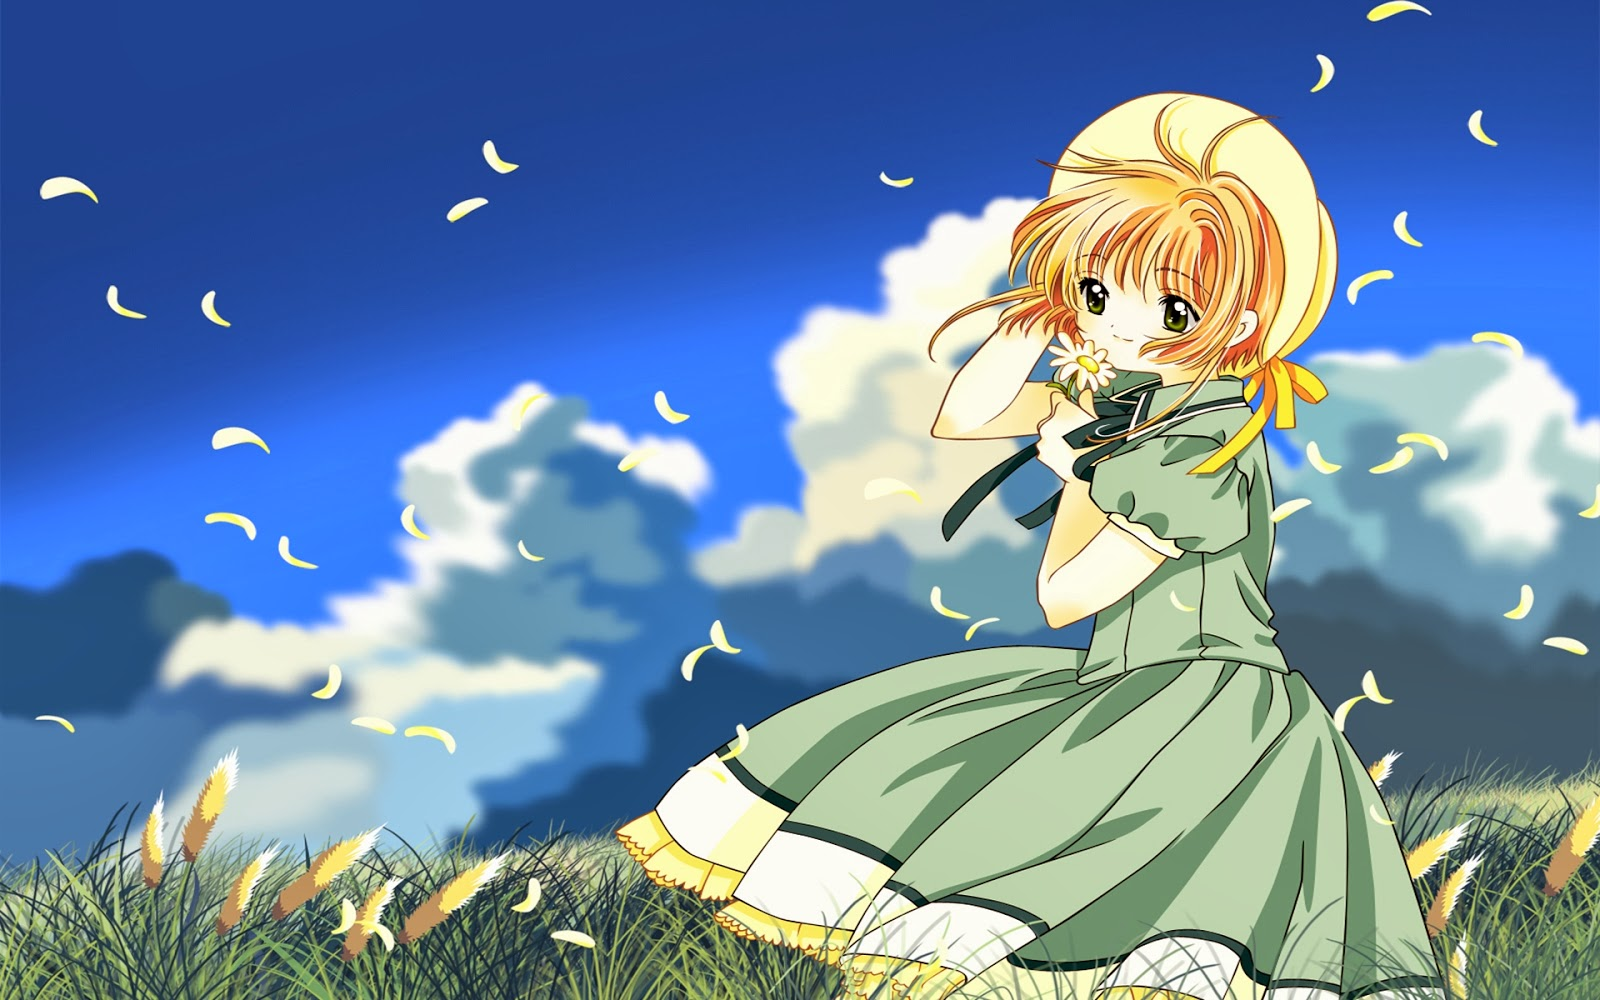 48 cool moving wallpapers on wallpapersafari - Anime moving wallpaper for pc ...